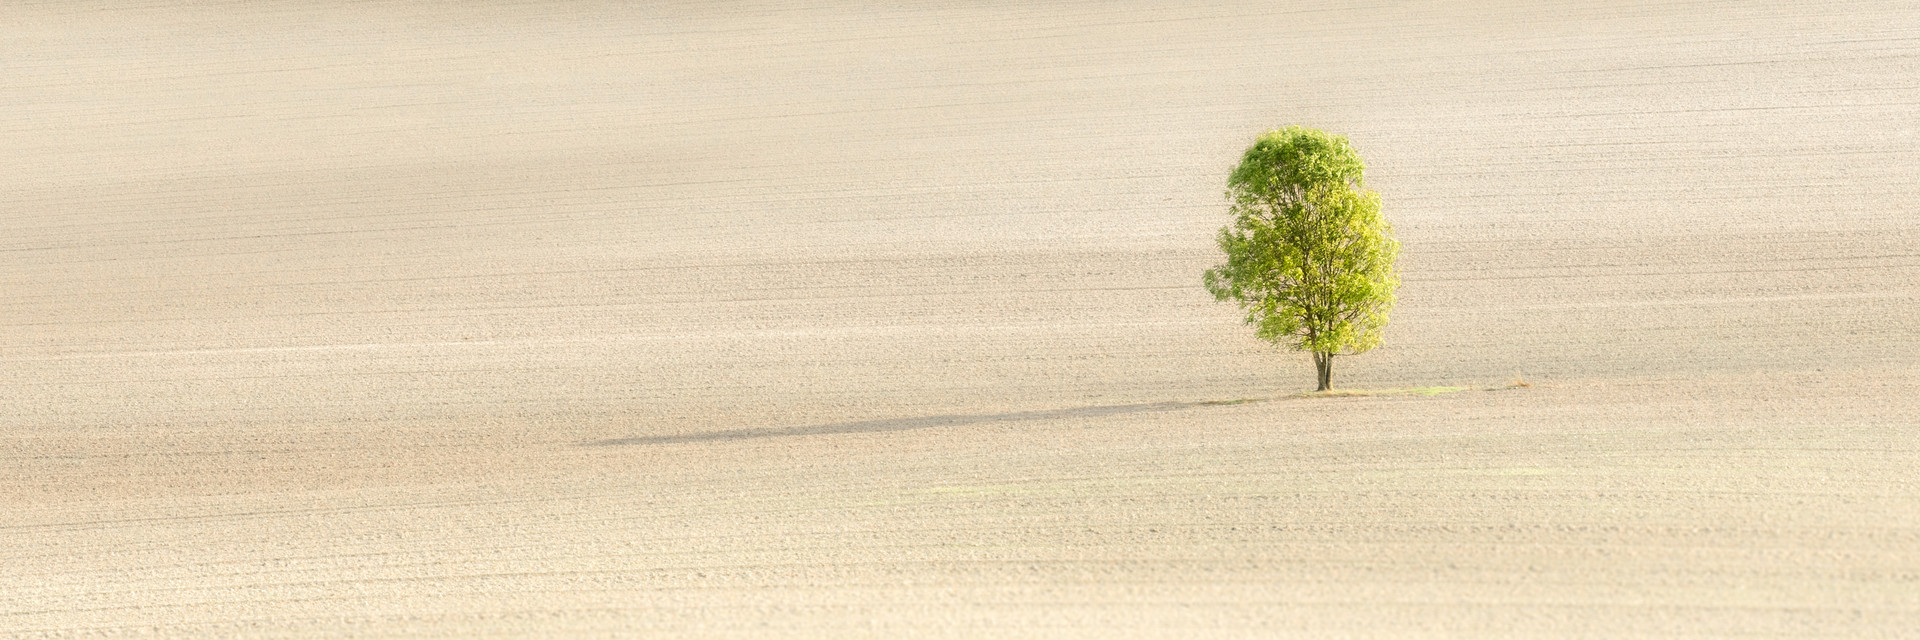 Lone Tree in Summer